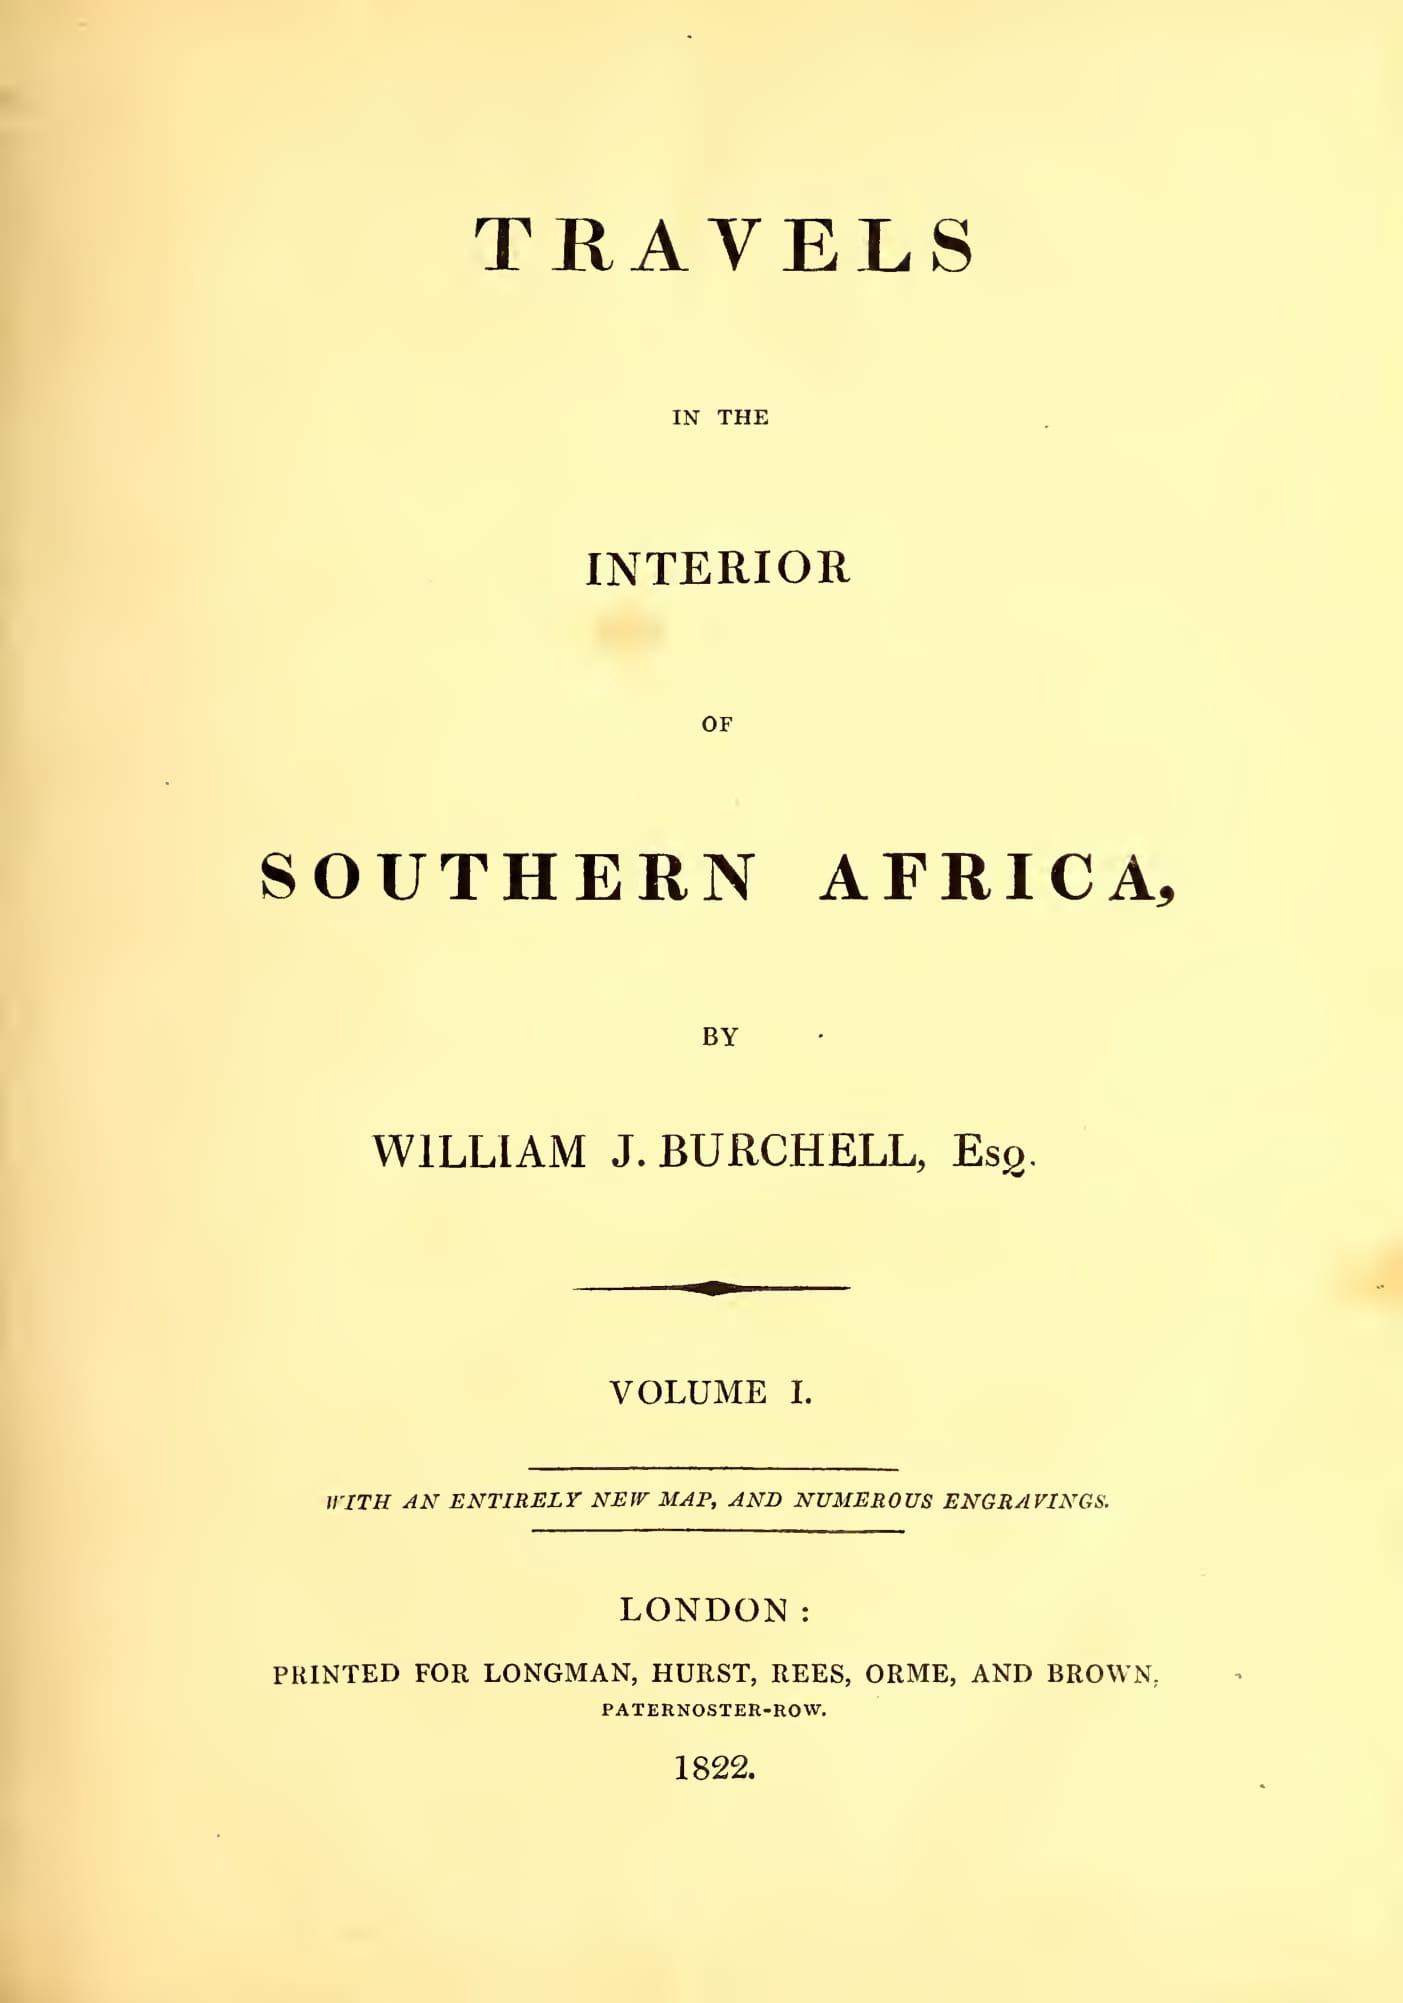 Biodiversity Heritage Library - Travels in the Interior of Southern Africa Vol. 1